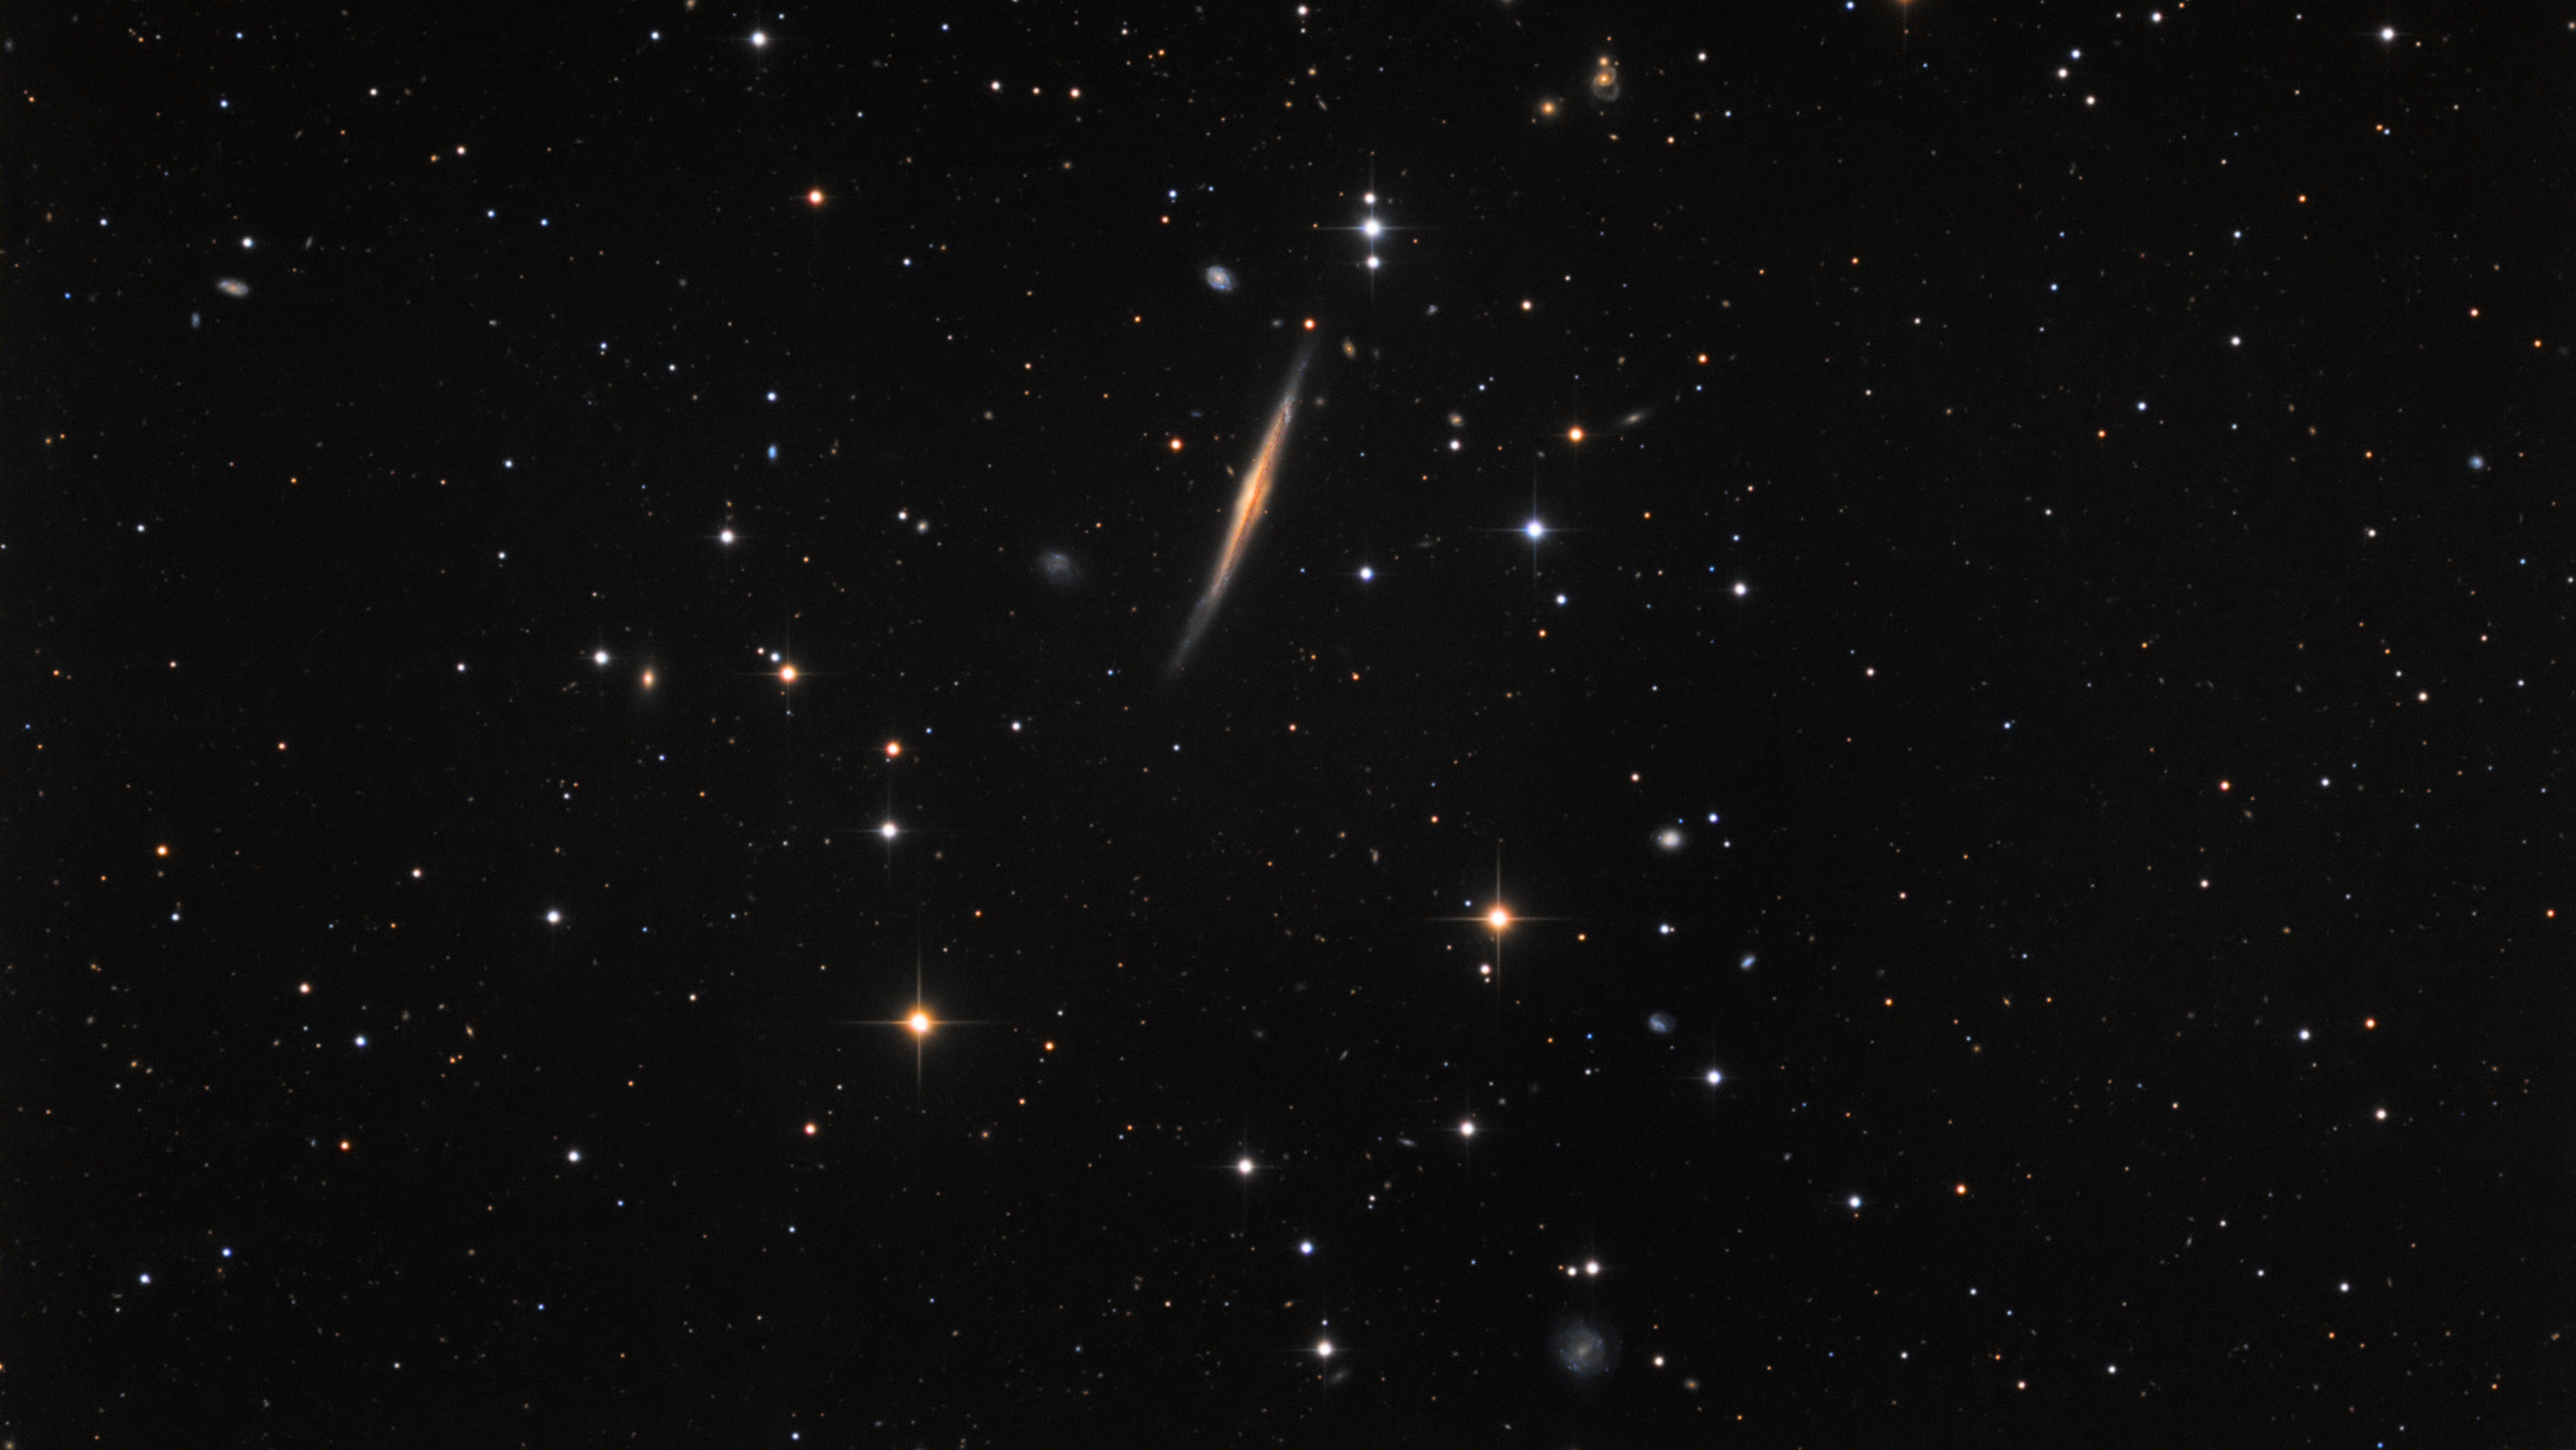 Knife-Edge Galaxy Appears to Slice Through Space in Amateur Astronomer's Photo